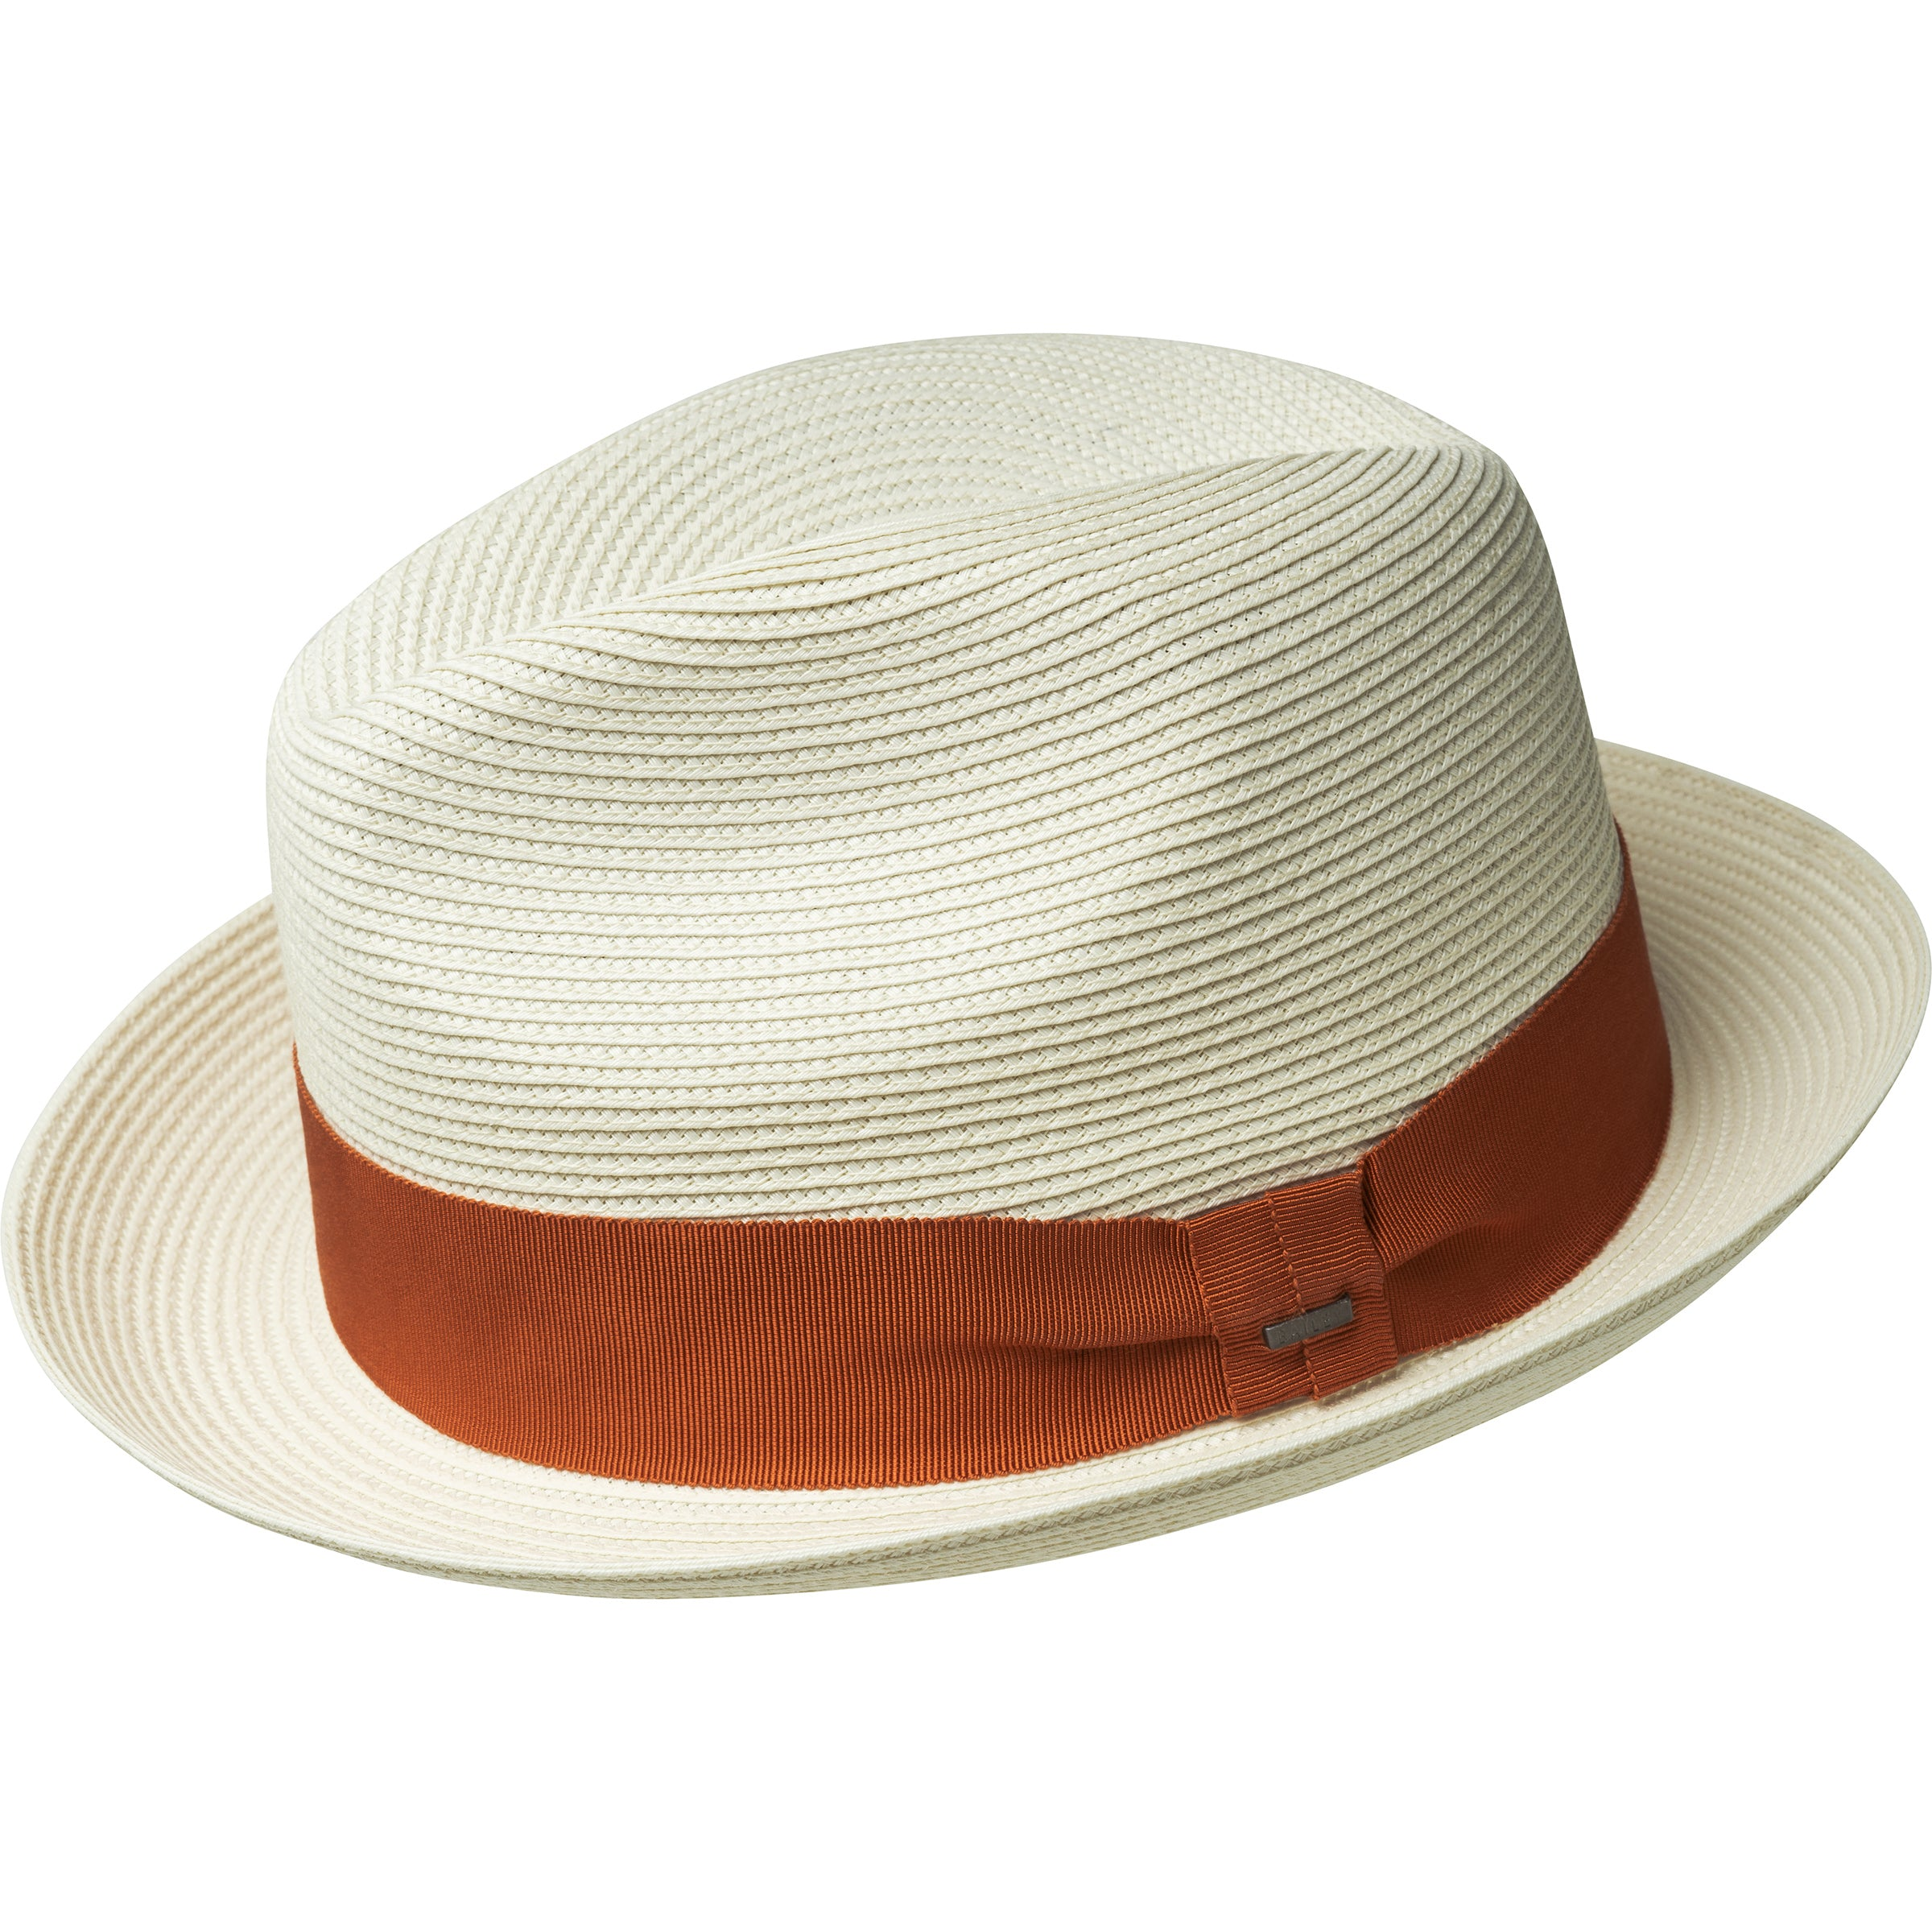 Bailey Craig Straw Hat